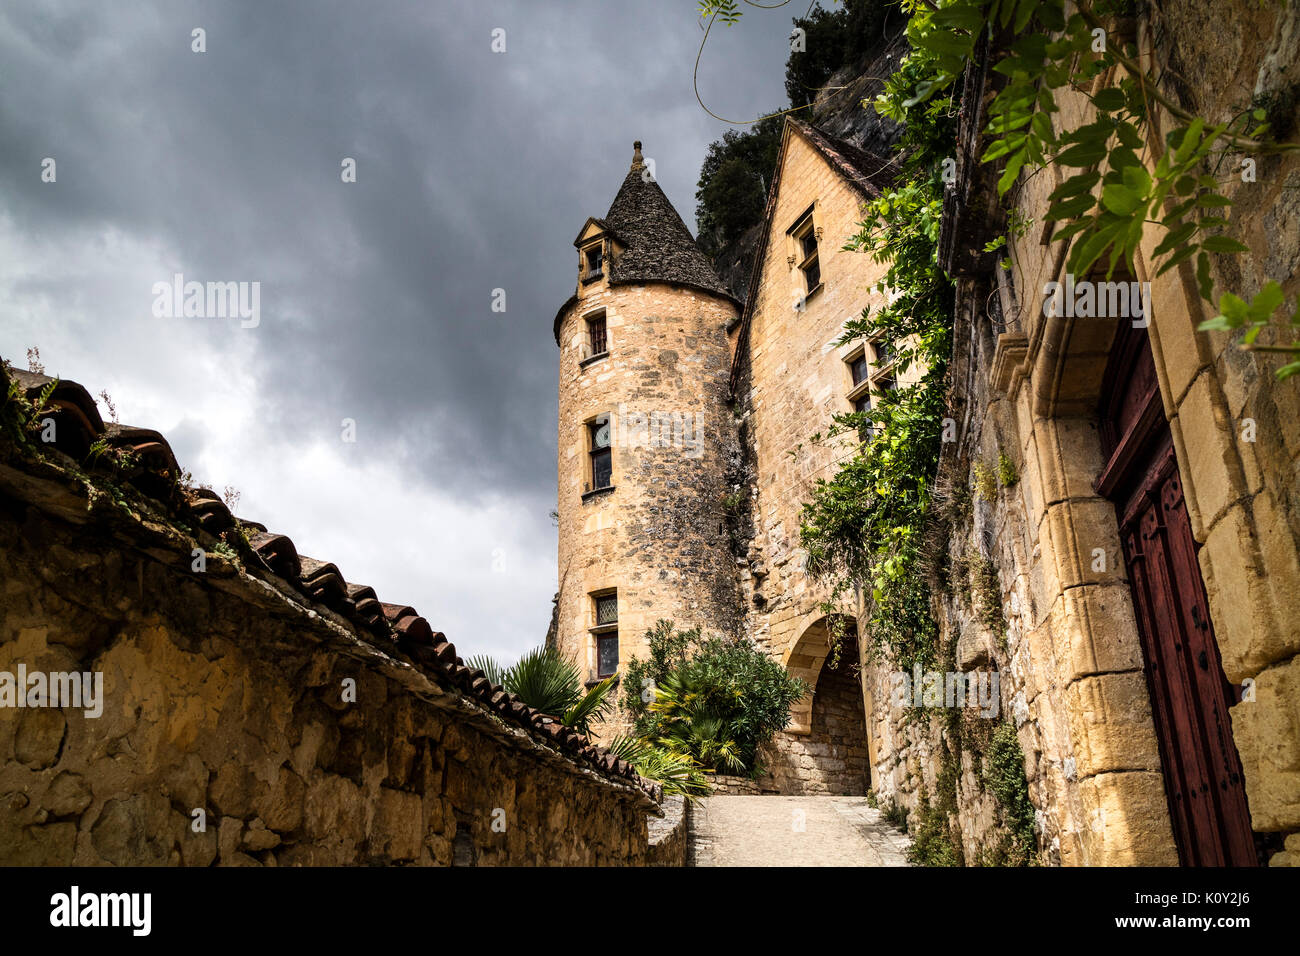 The 15th Century Renaissance Style Manoir de Tarde in the Village of La Roque-Gageac, Set Against a Dramatic Stormy Sky, Dordogne, France, Europe - Stock Image